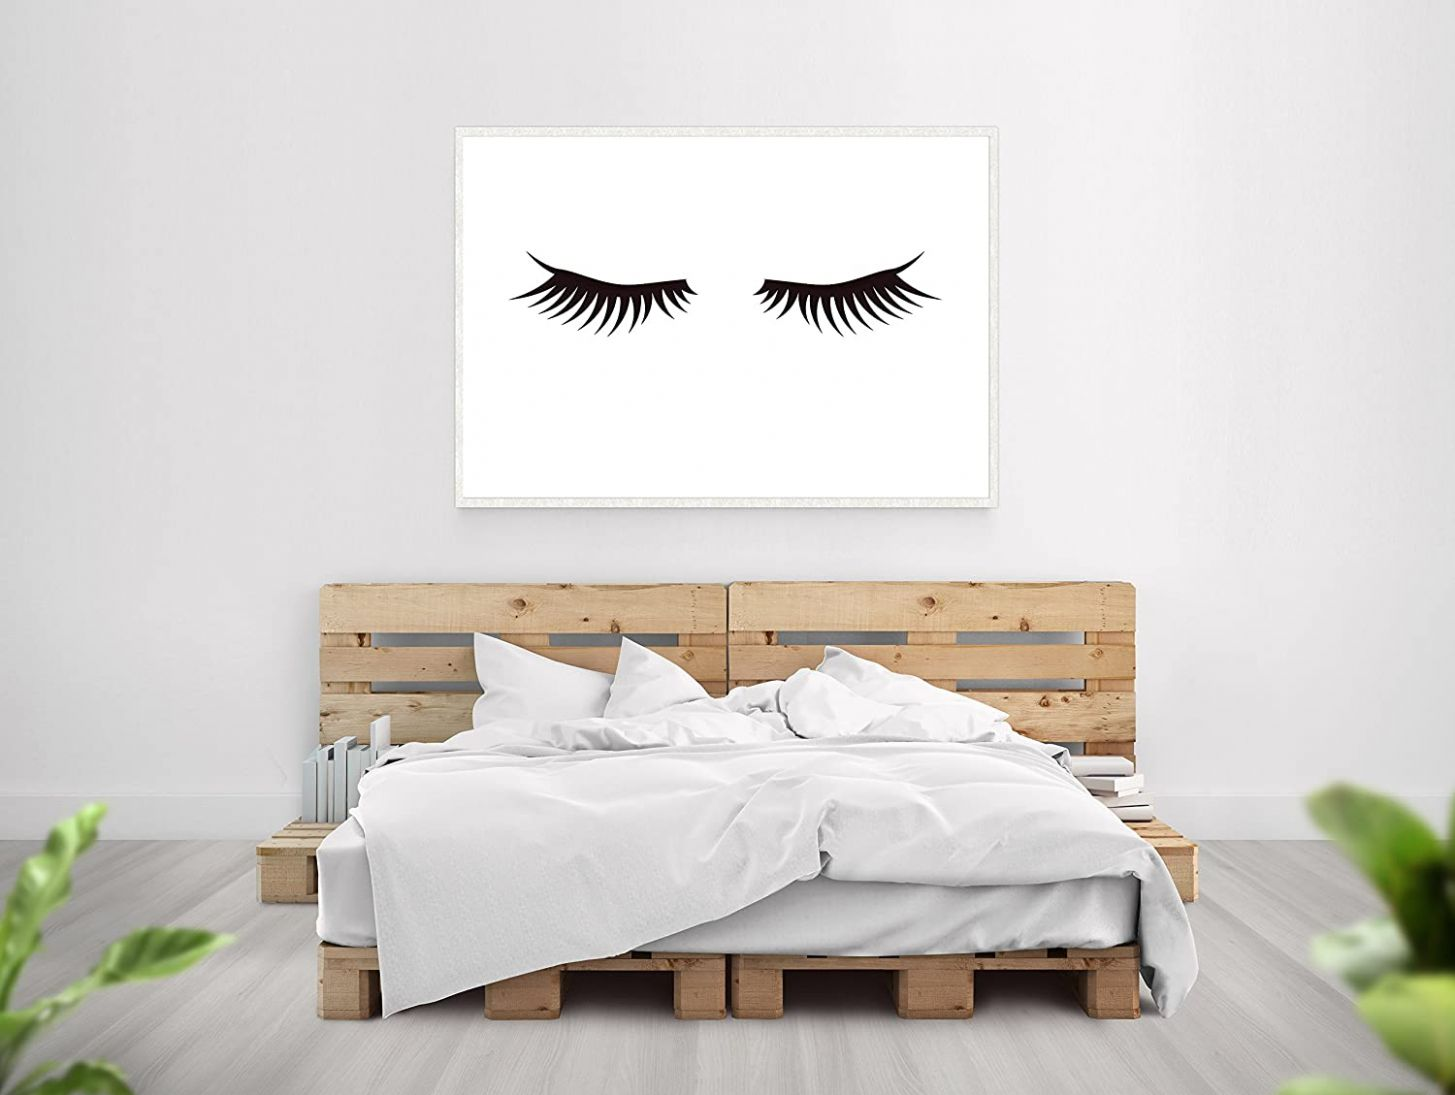 Amazon.com: SpecsDecorCo Eyelash Print Artwork/Makeup Room ...